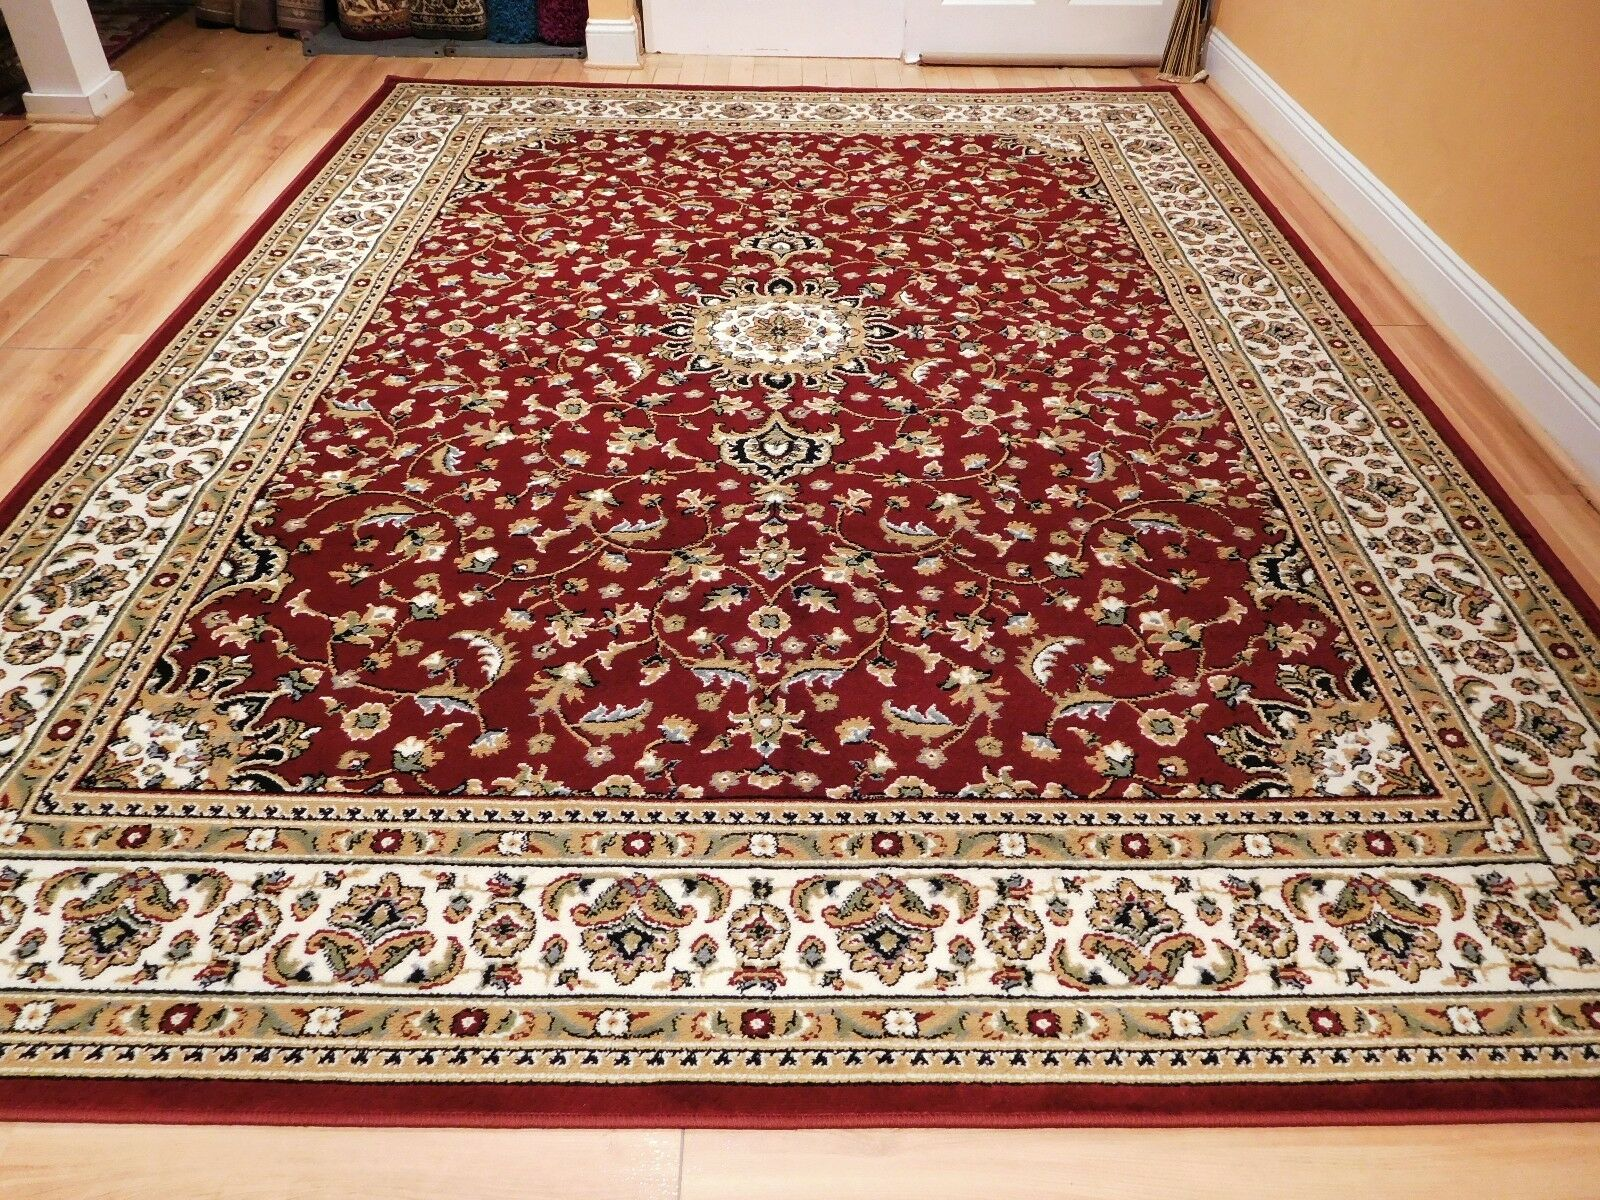 Hand Tufted Printed Red Traditional Floral Rug 8 X 10 For Sale Online Ebay